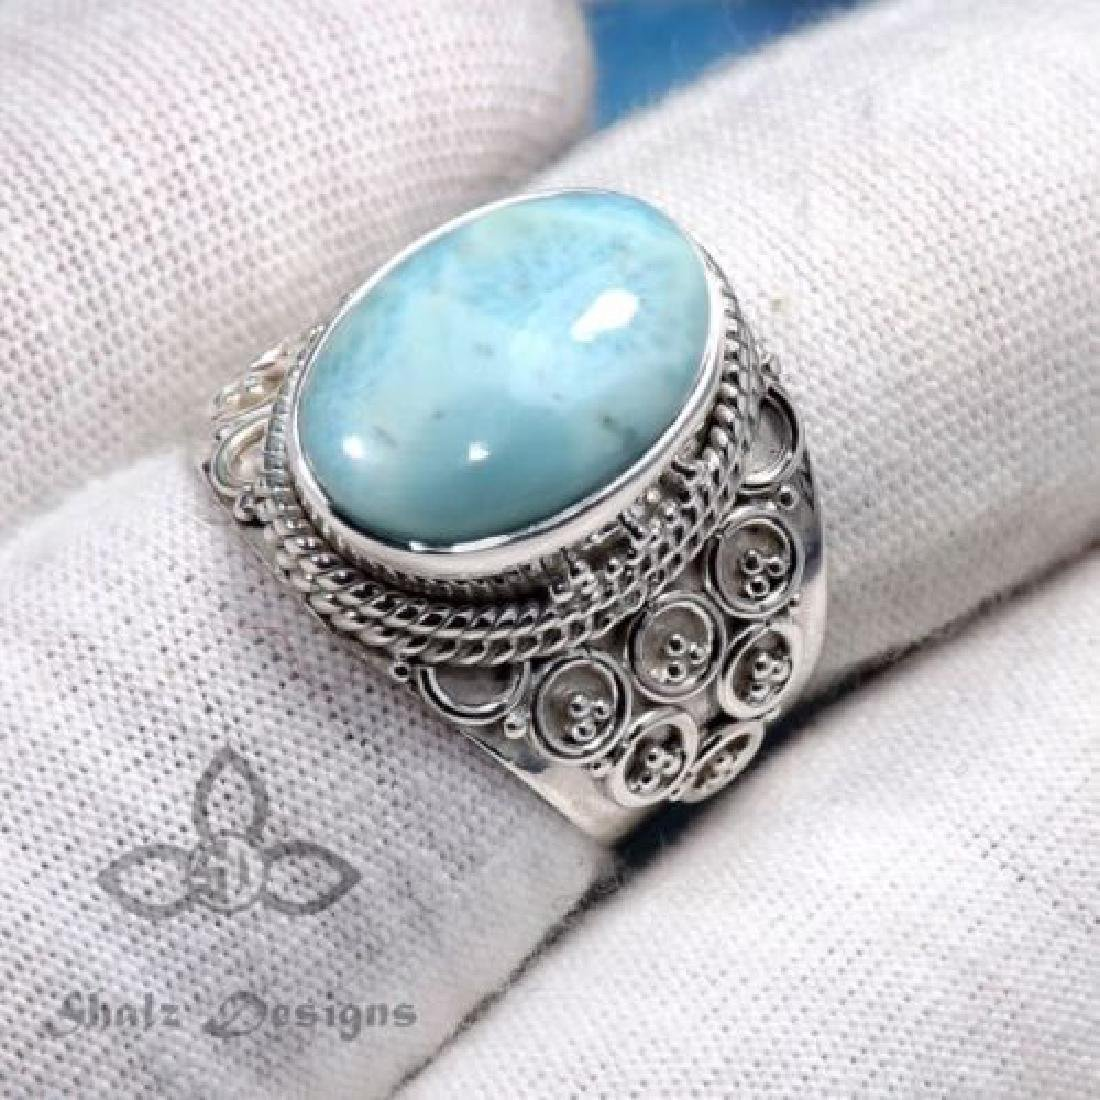 Beautiful Blue Moonstone Ring 925 silver Size 7 - 2